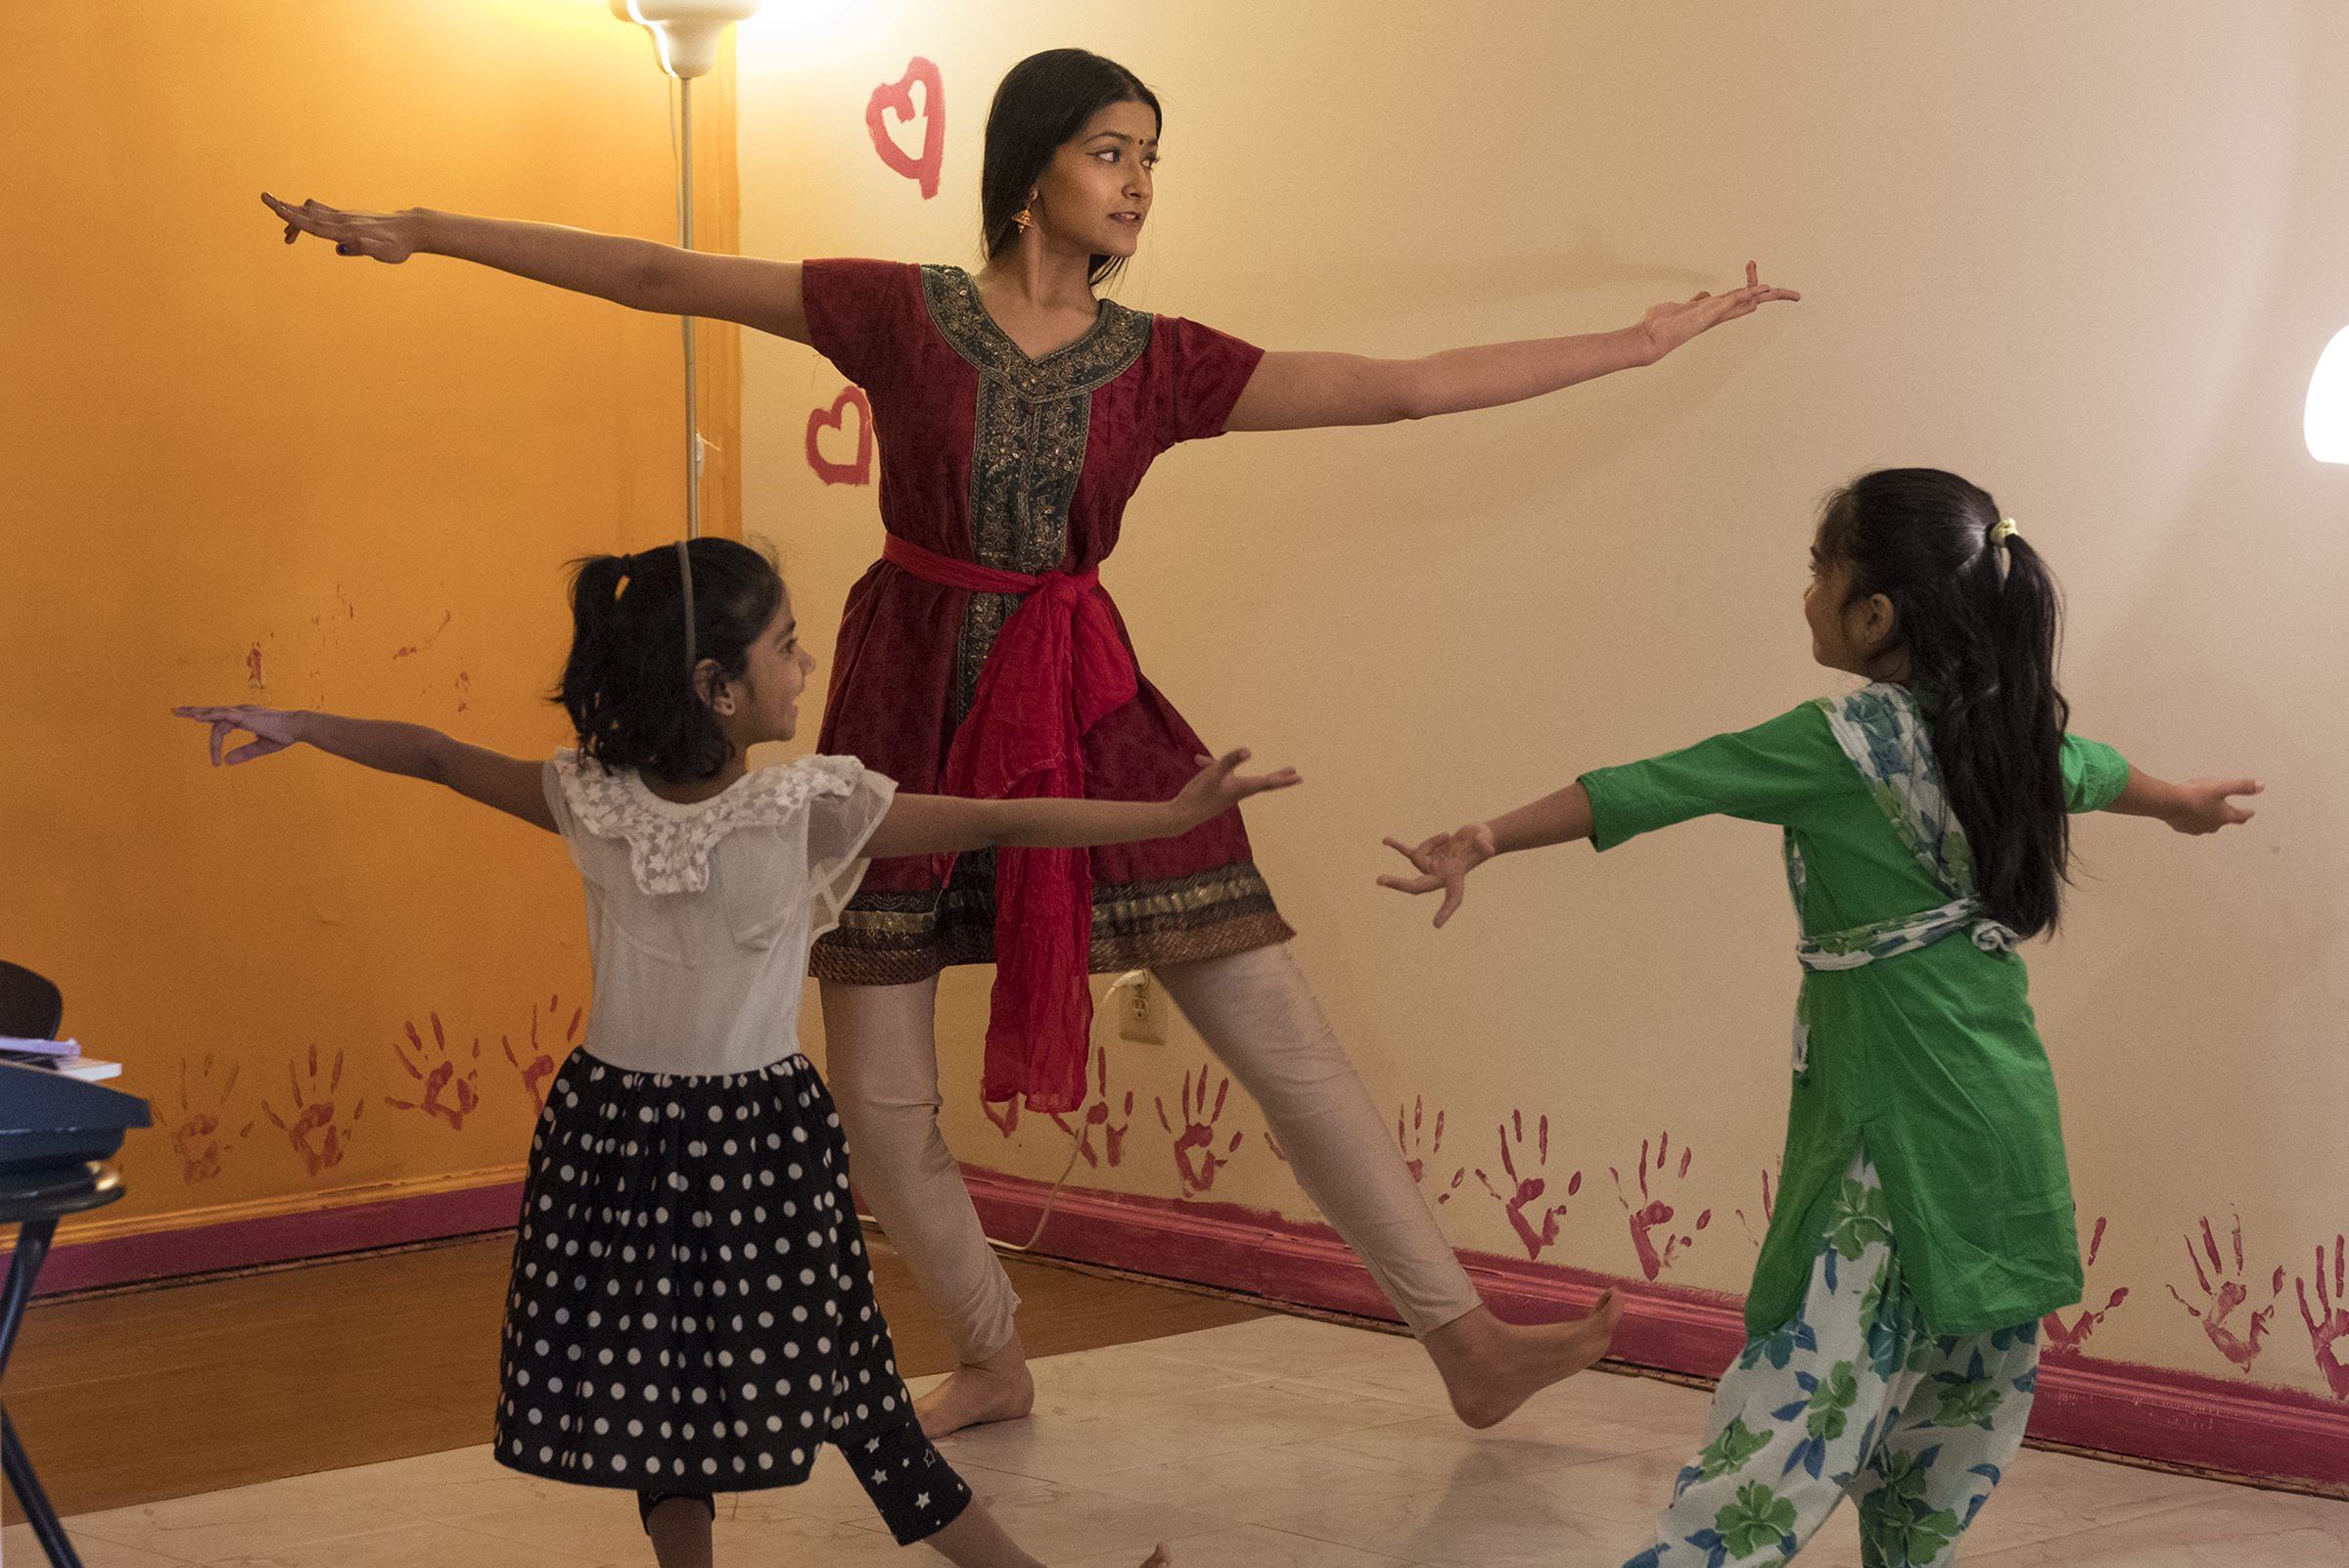 Ashraya Ananthanarayanan, 17, a senior at Commonwealth Charter Academy, has already taken so many college-level classes at Harvard that when she arrives on the Cambridge, Massachusetts, campus as a full-time student in September she will be considered a senior. Here, she teaches a class on traditional Indian dancing to two 7 year olds - Shamuyuktha Sunsararajan, left and Avika Ka;e, right.( ED HILLE / Special to the Inquirer.)